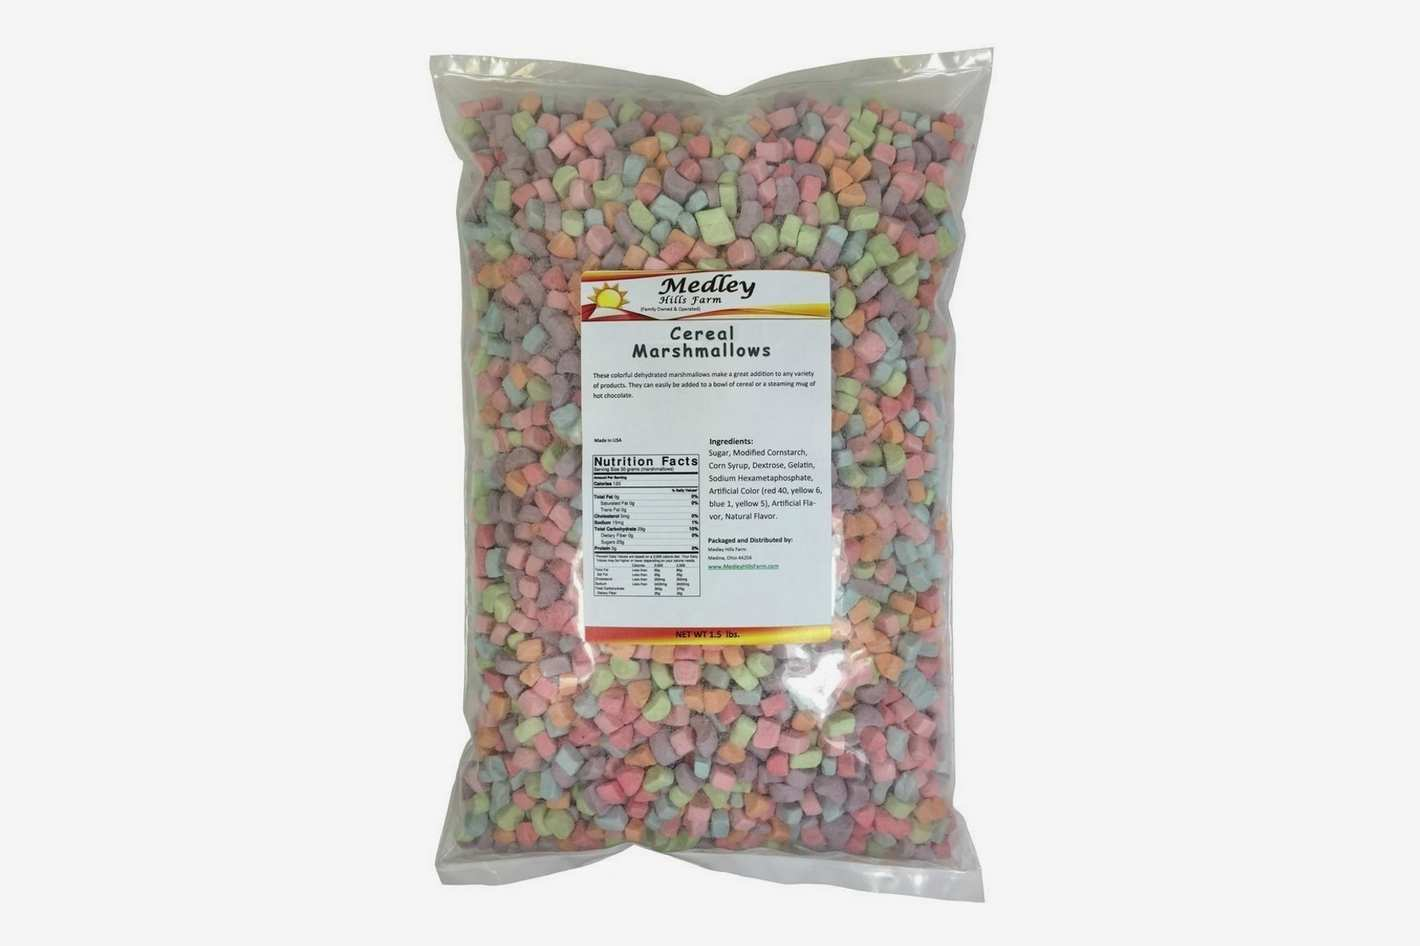 Medley Hills Farm Assorted Dehydrated Marshmallow Bits Cereal